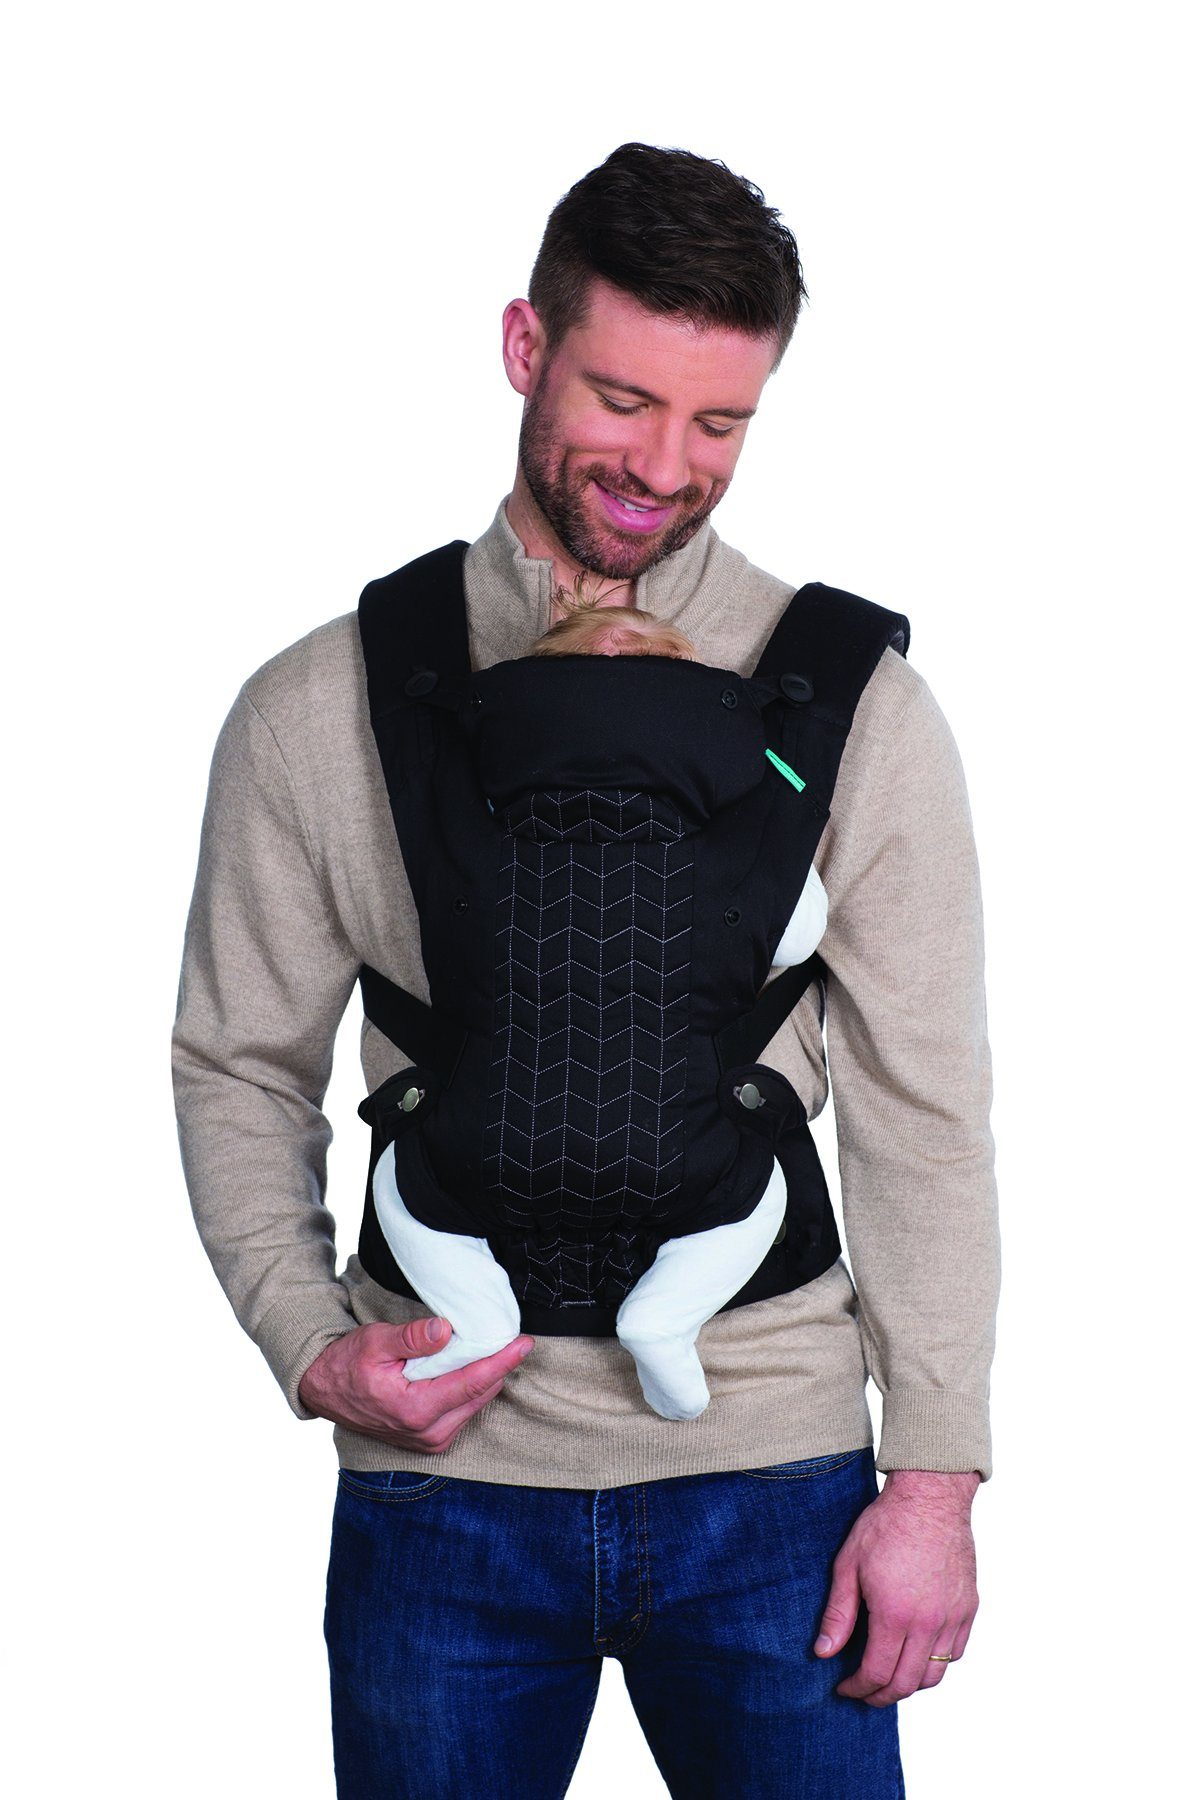 Infantino Upscale Carrier, Black, One Size Infantino Fully safety tested 4 way carrier Facing in newborn & m position 5